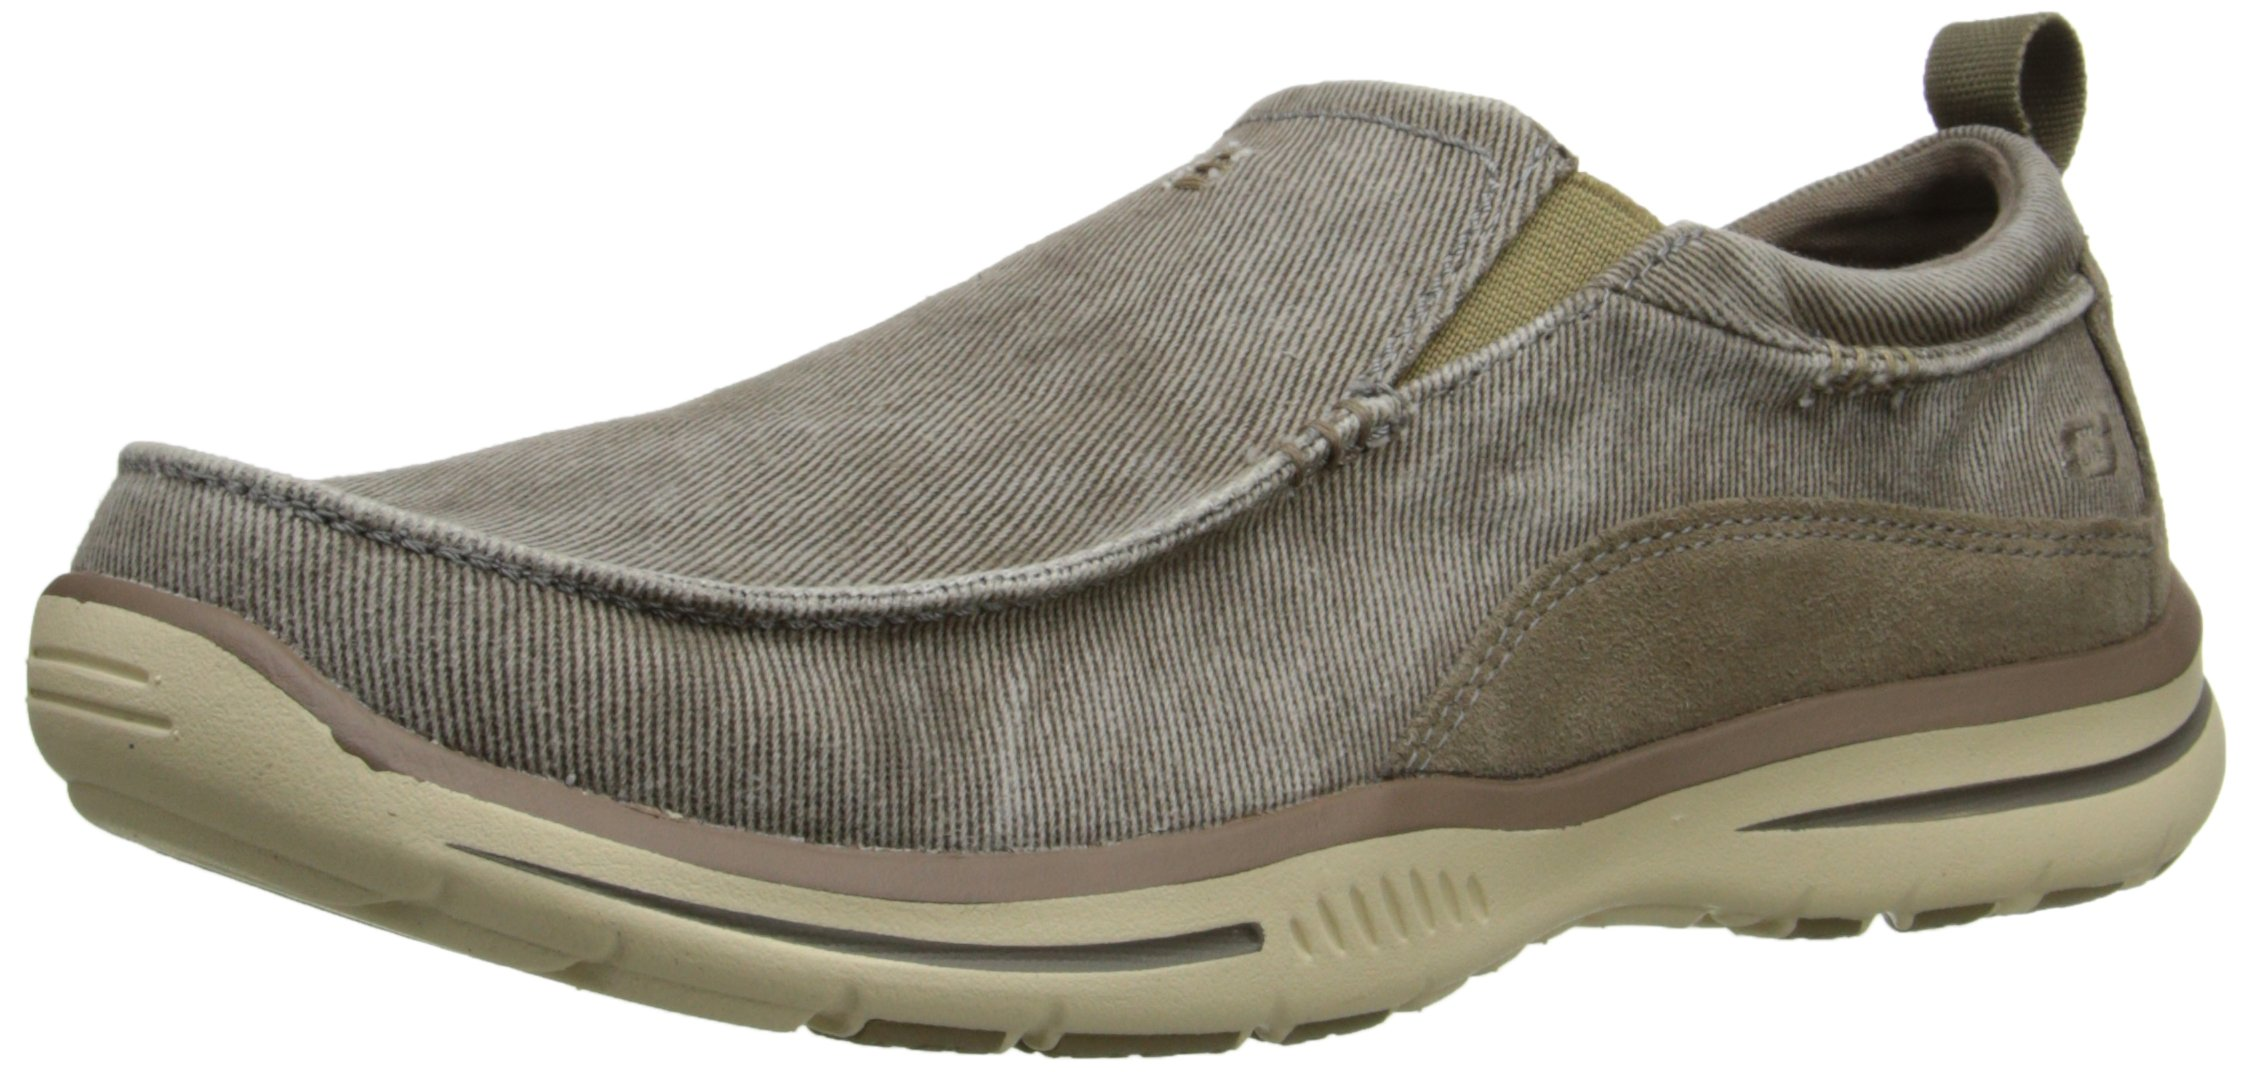 Skechers Men's Relaxed Fit Elected Drigo Slip-On Loafer,Taupe,11.5 D US by Skechers